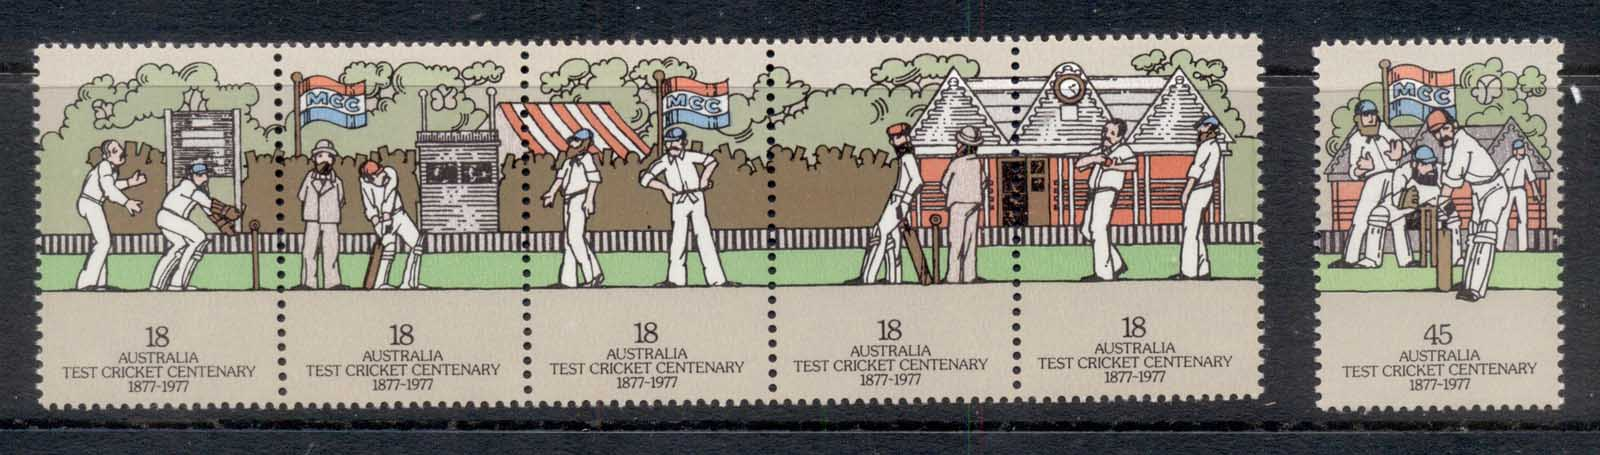 Australia 1977 Centenary test Cricket MUH